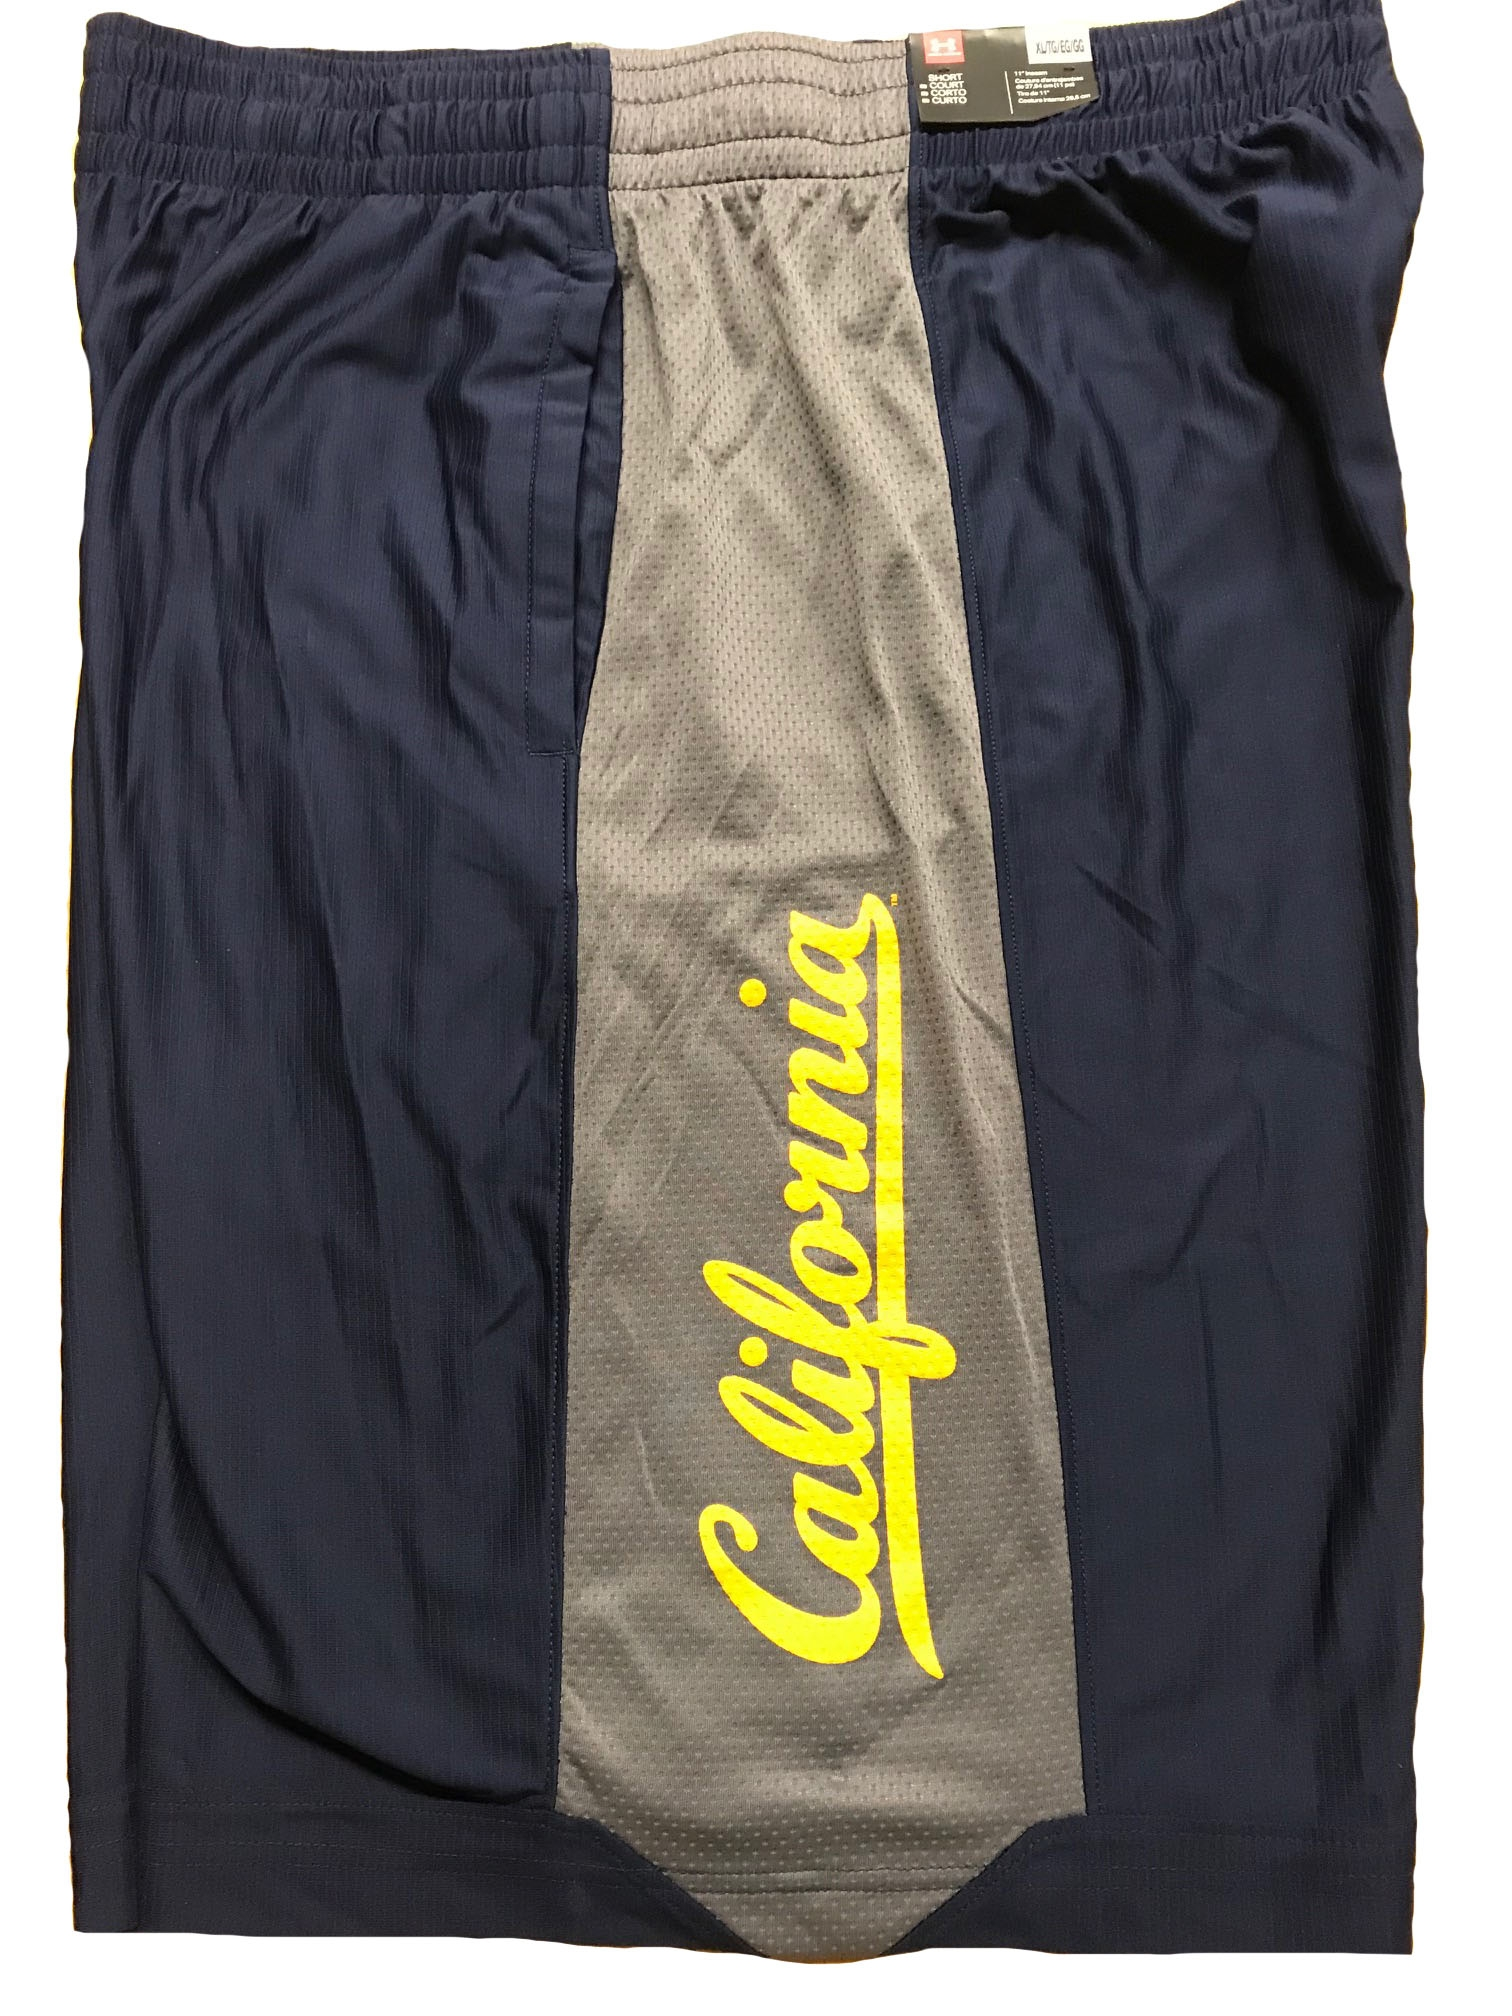 Cal Bears Men's Isolation Shorts by Under Armour